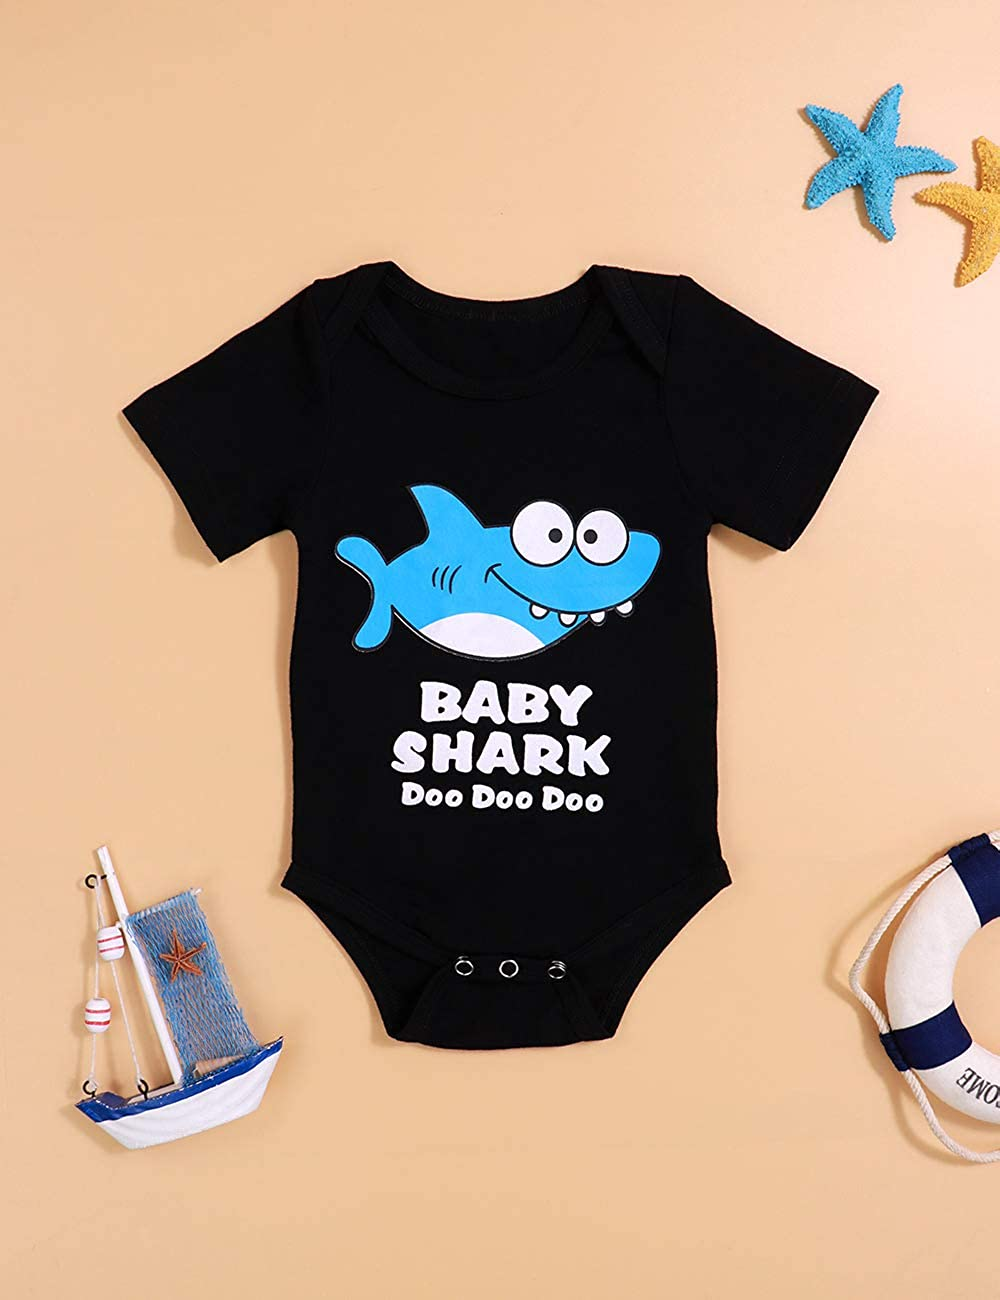 646acc912 Amazon.com: Toddler Boys Girls Clothes Baby Shark Doo Doo Romper Newborn  Bodysuit Short Sleeve Onesies for Infant(9-12Mmonths/size100) Black:  Clothing